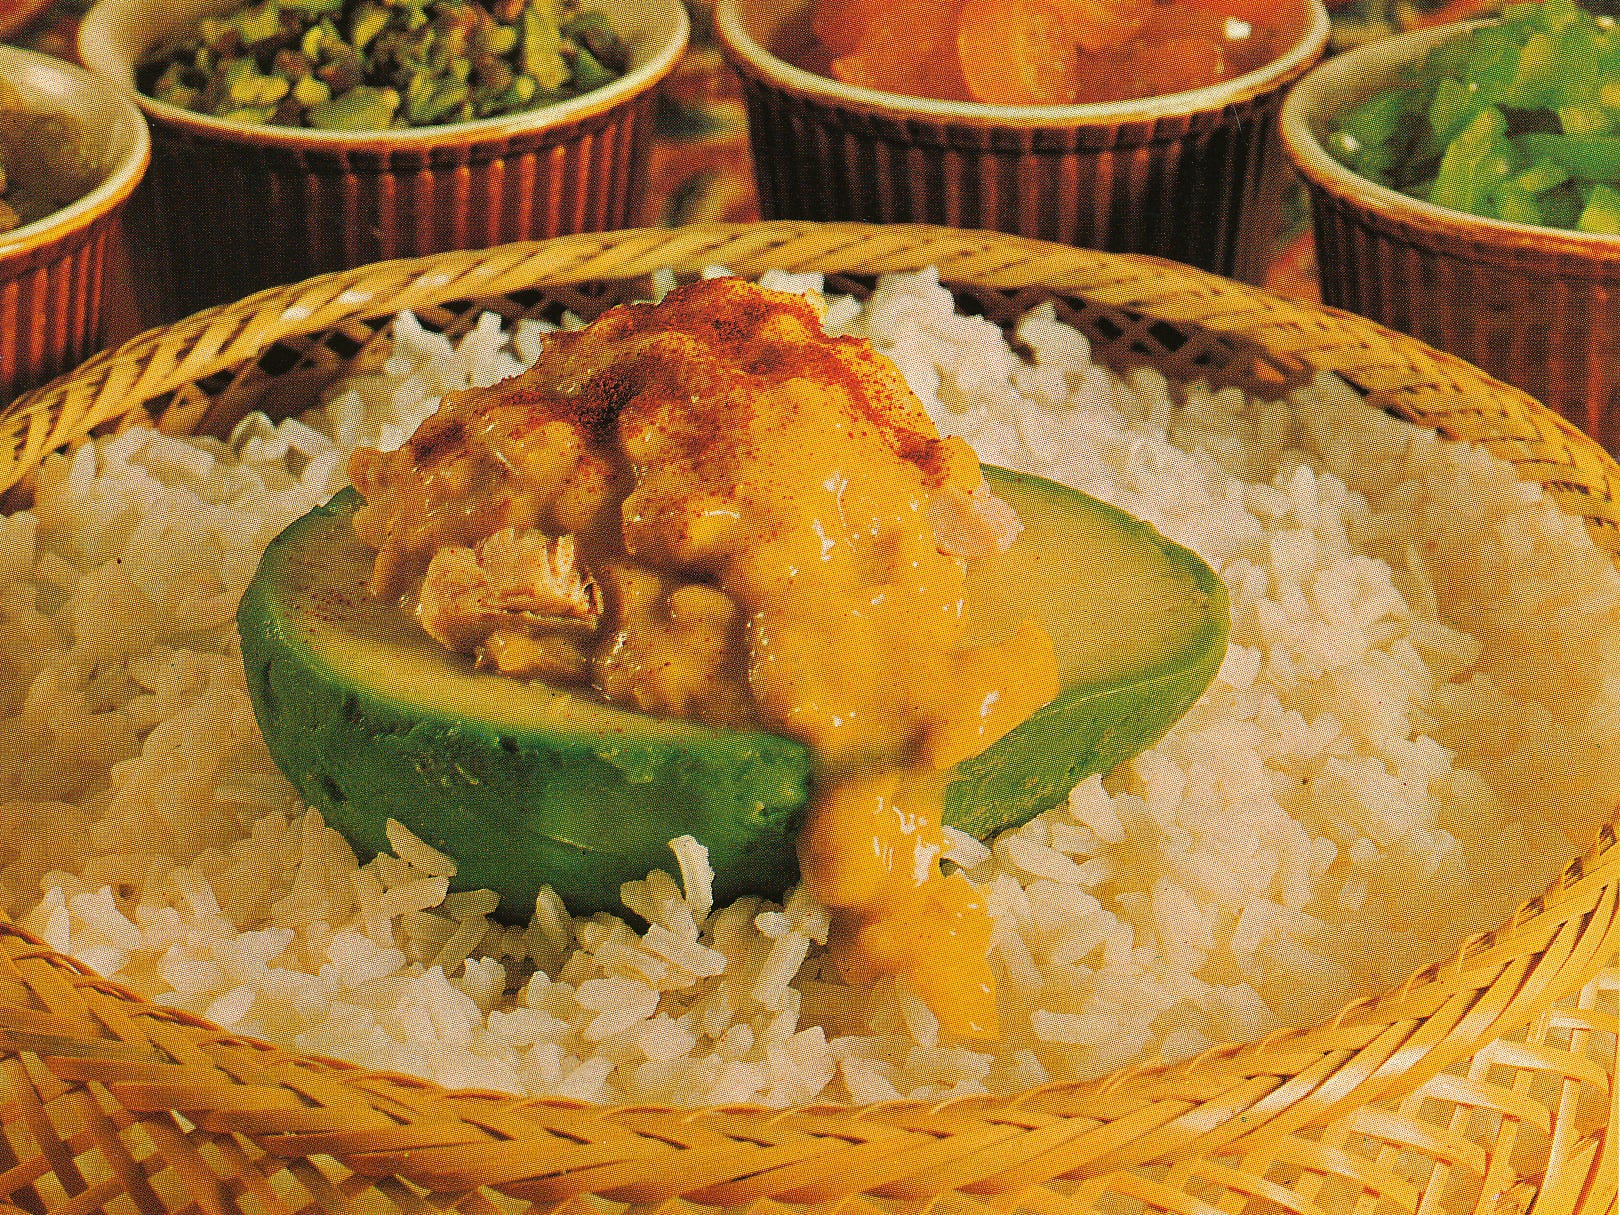 Peeled avocado halves were stuffed with curried chicken in this promotional recipe called Avocados on the Half Shell.